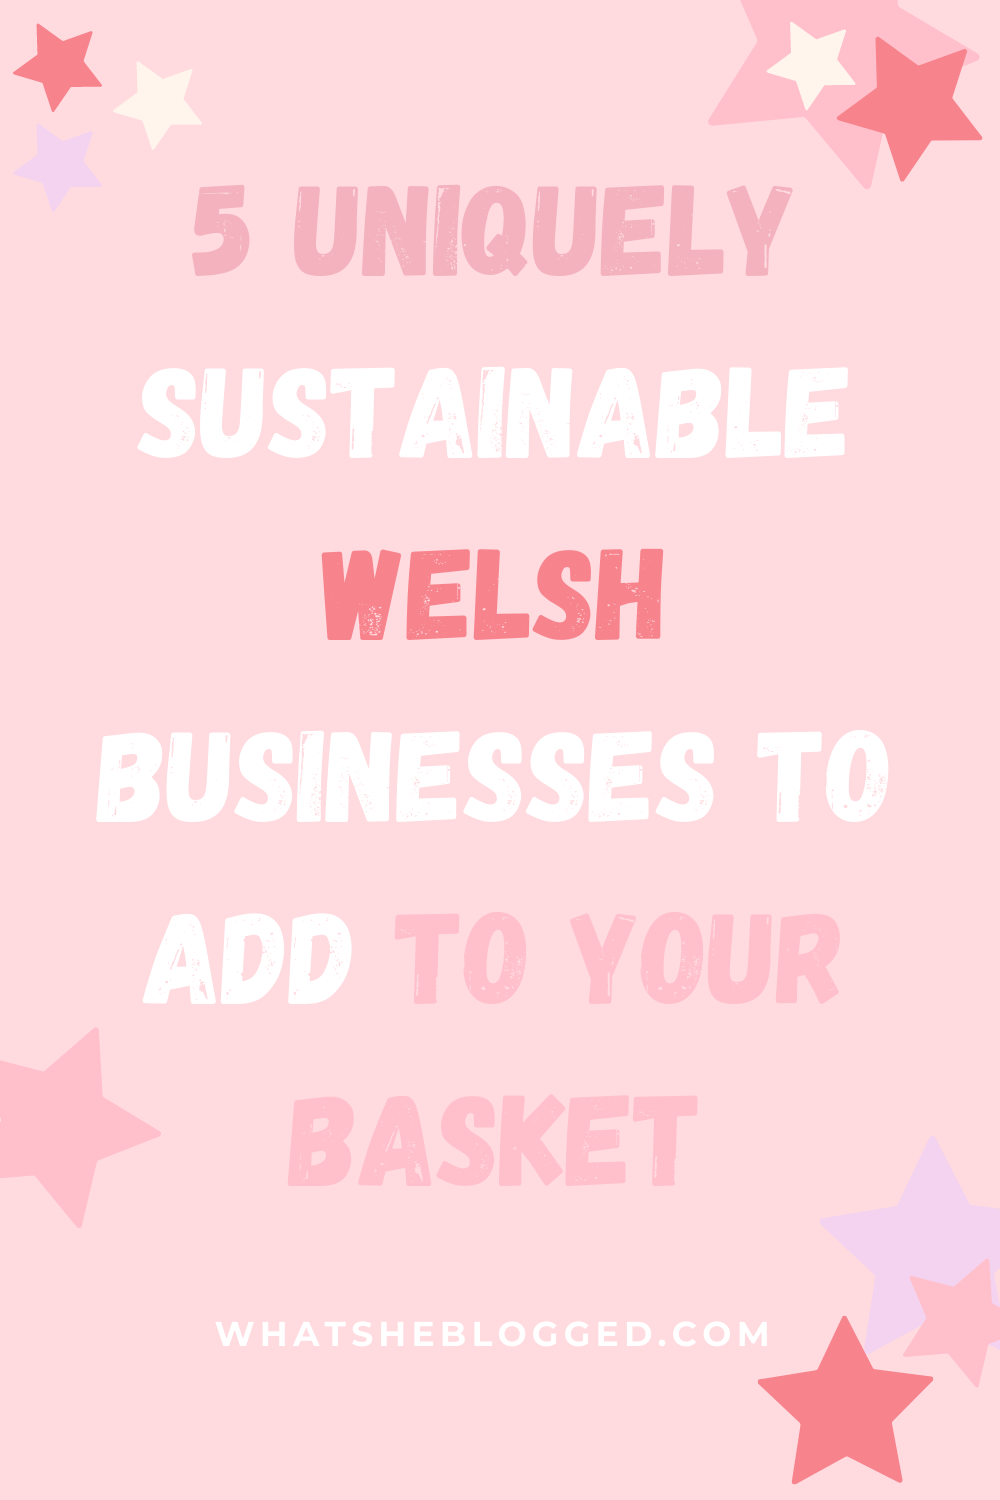 5 Uniquely Sustainable Welsh Businesses to Add to Your Basket